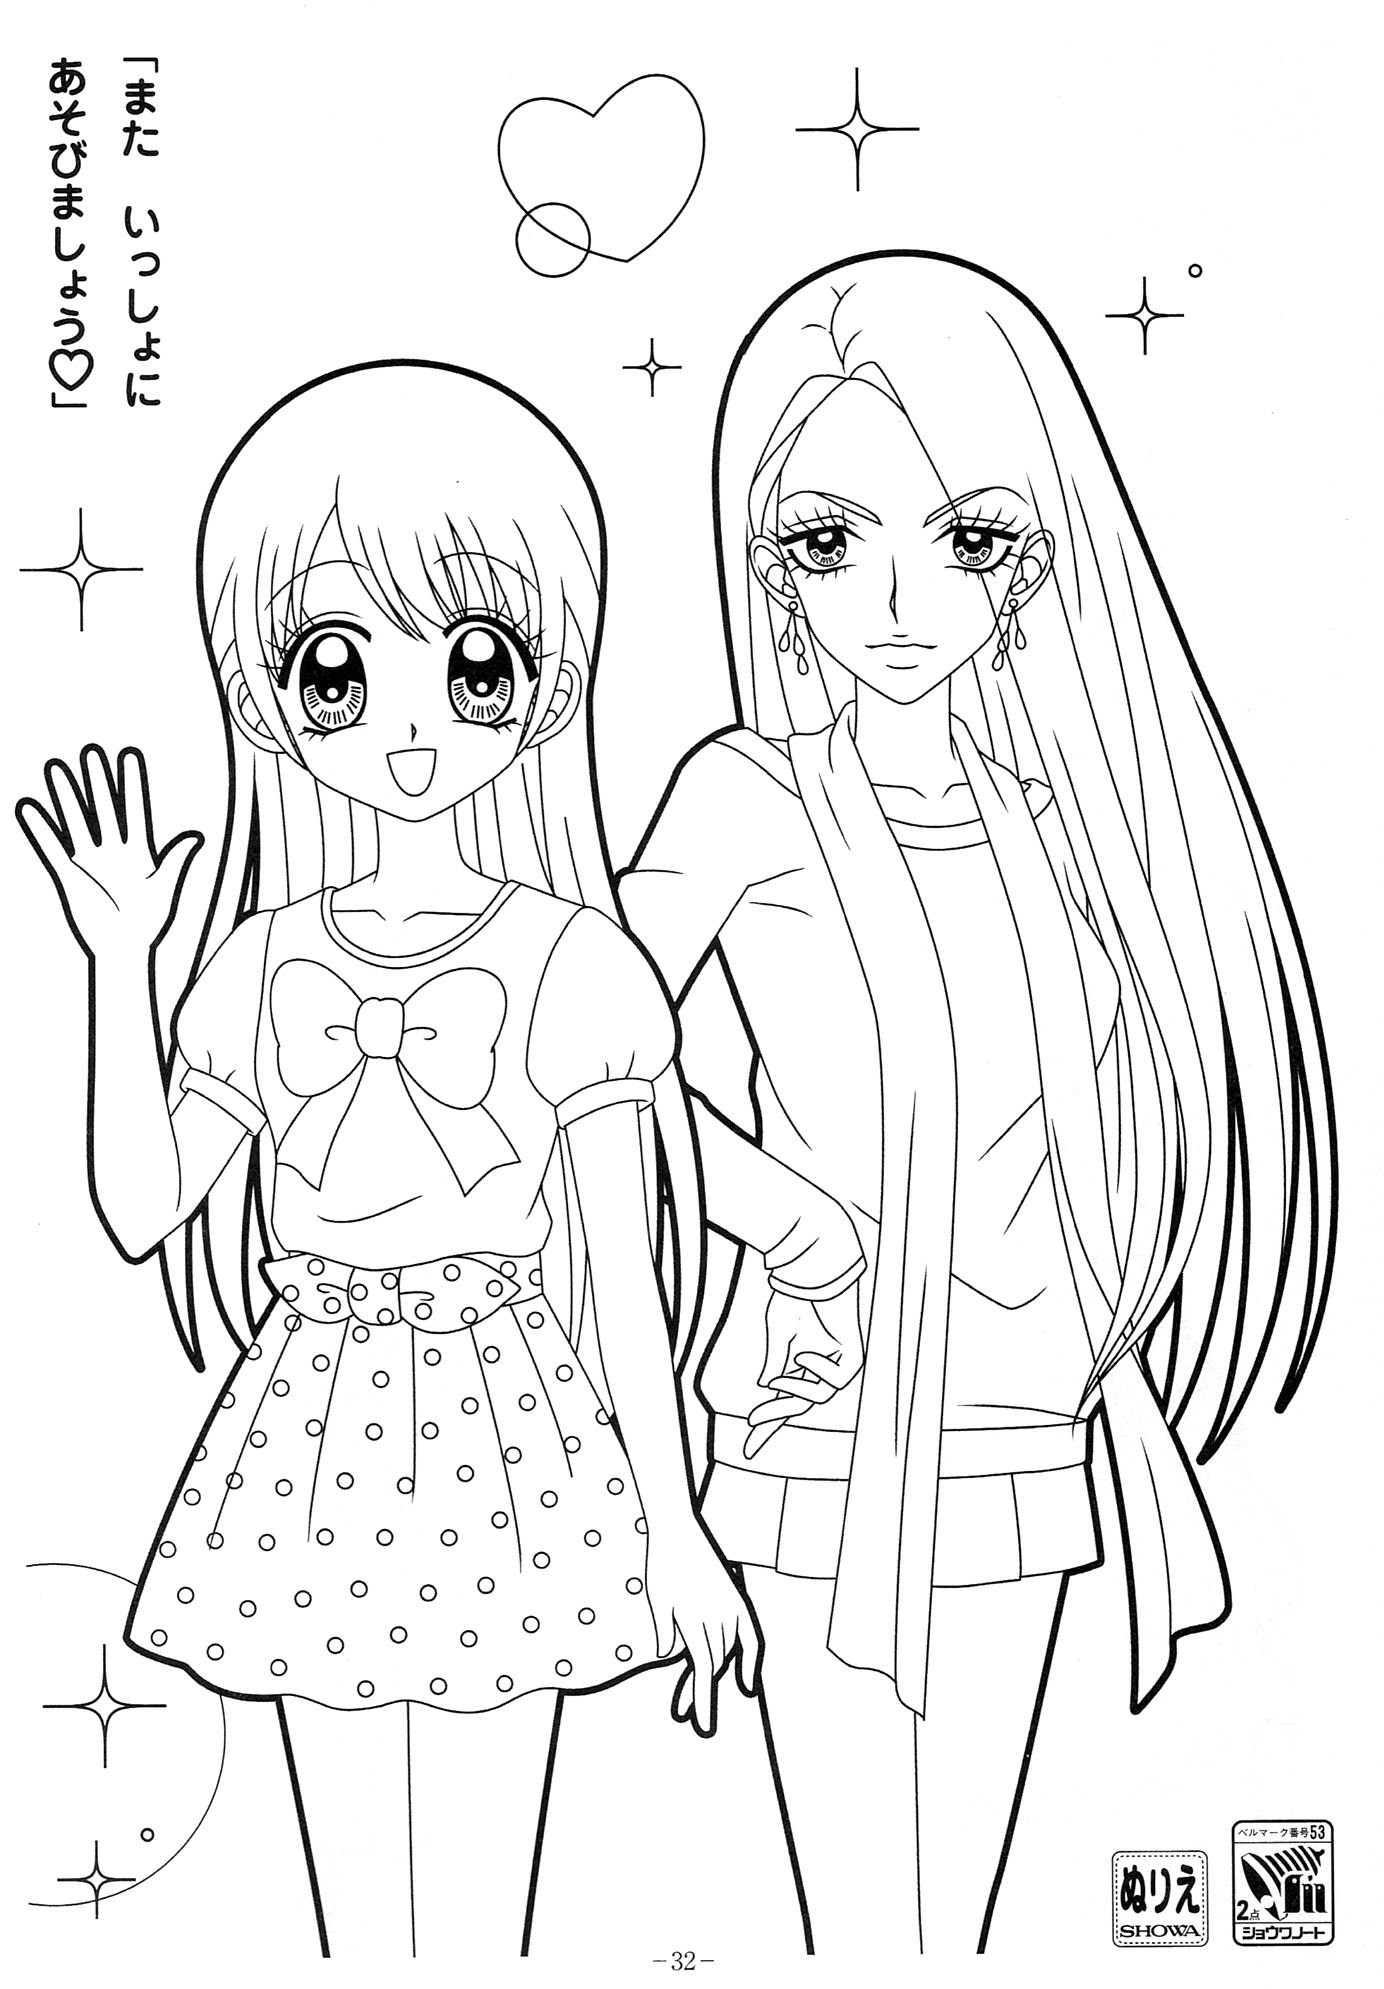 Mechamote lincho coloring book 034 jpg 1384x1989 coloring pages for girls online coloring pages